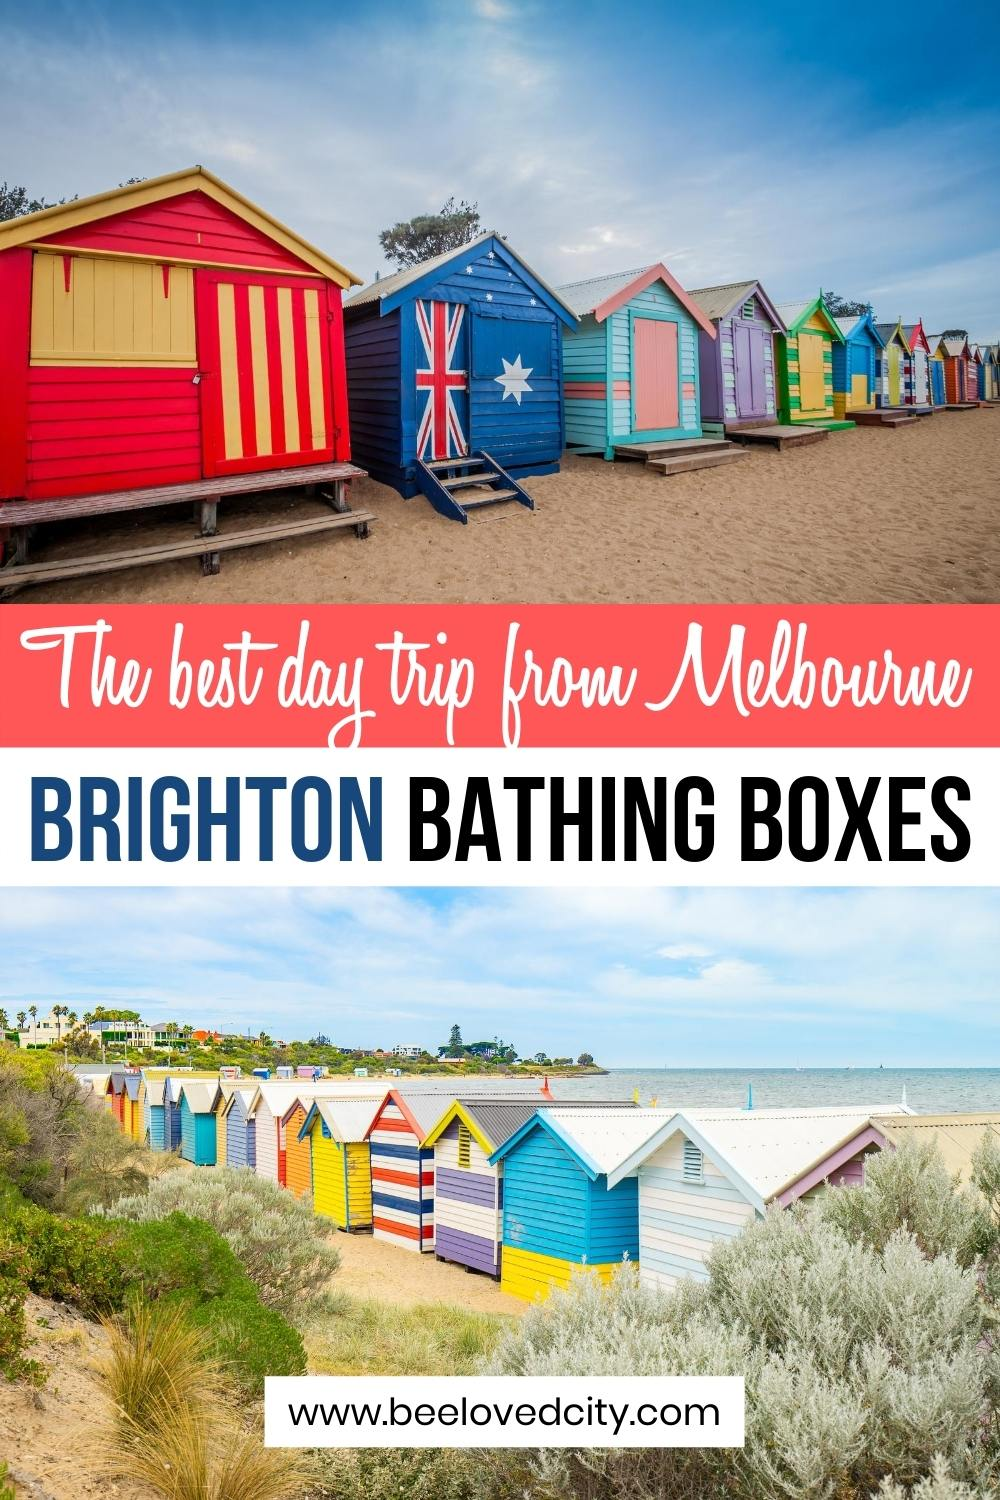 day trip from melbourne to brighton beach boxes